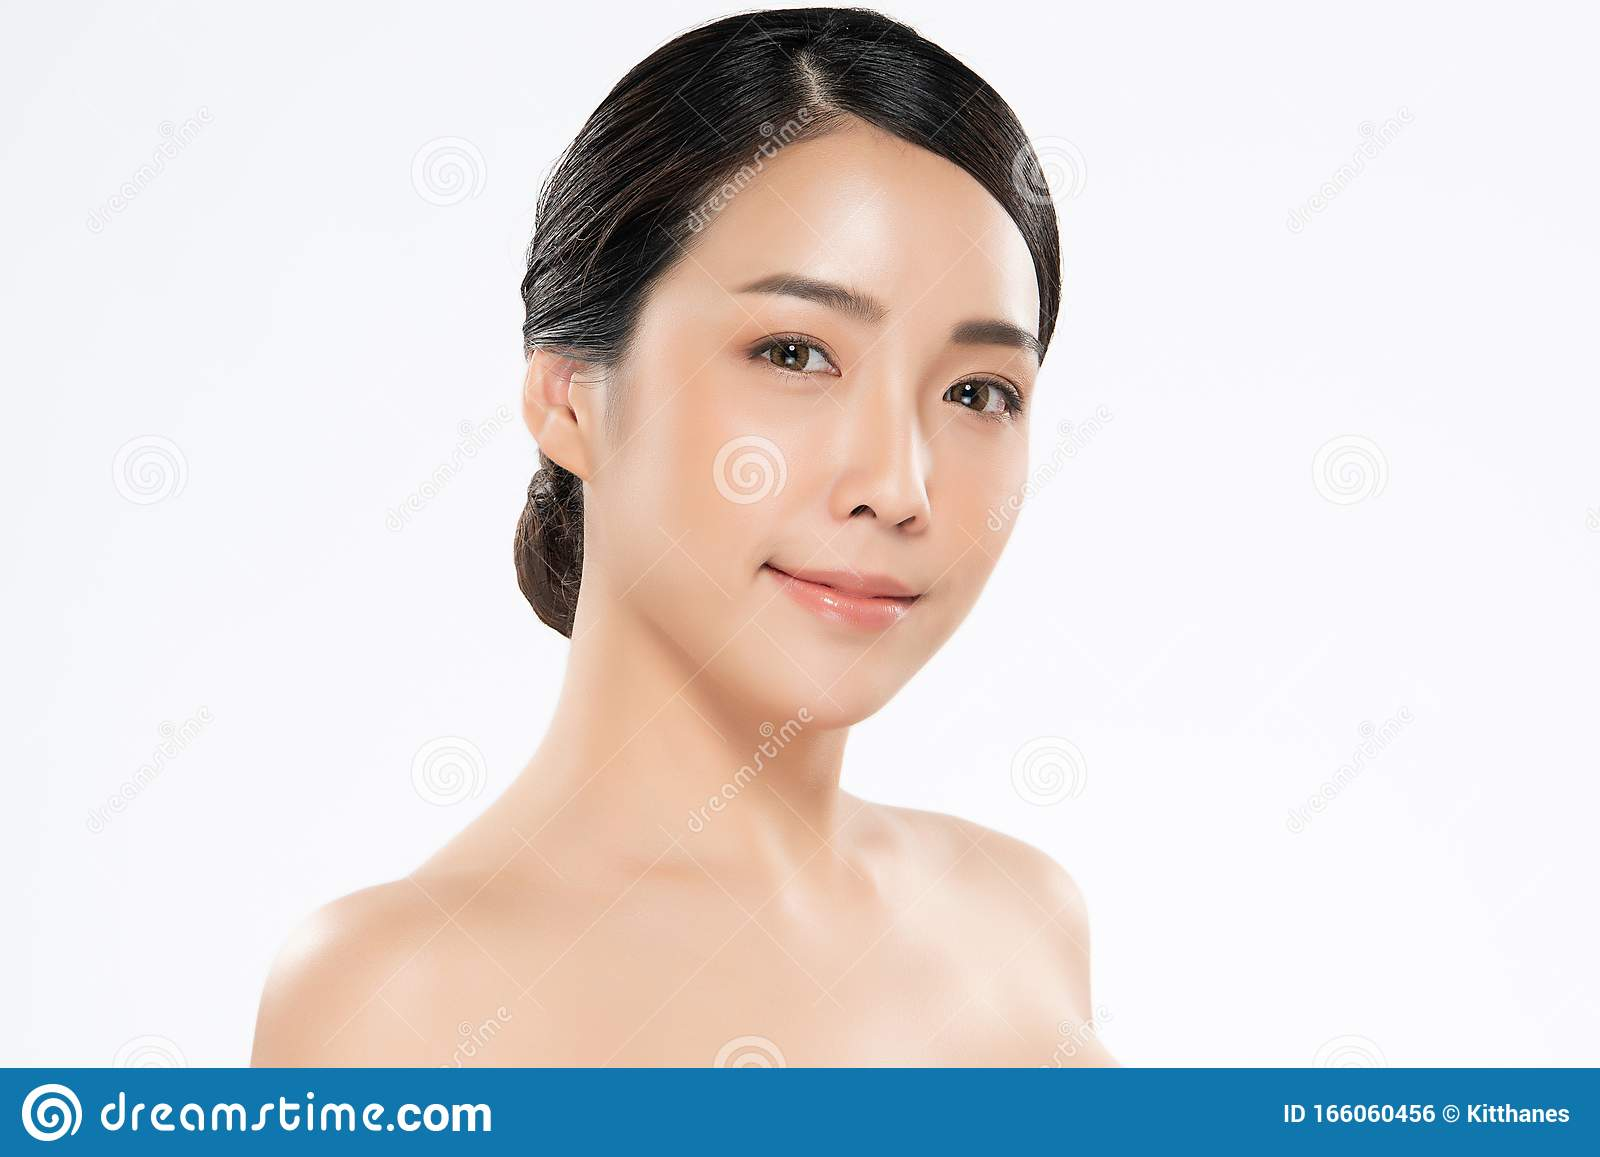 https://thumbs.dreamstime.com/z/beautiful-young-asian-woman-clean-fresh-skin-face-care-facial-treatment-white-background-beauty-cosmetics-concept-166060456.jpg